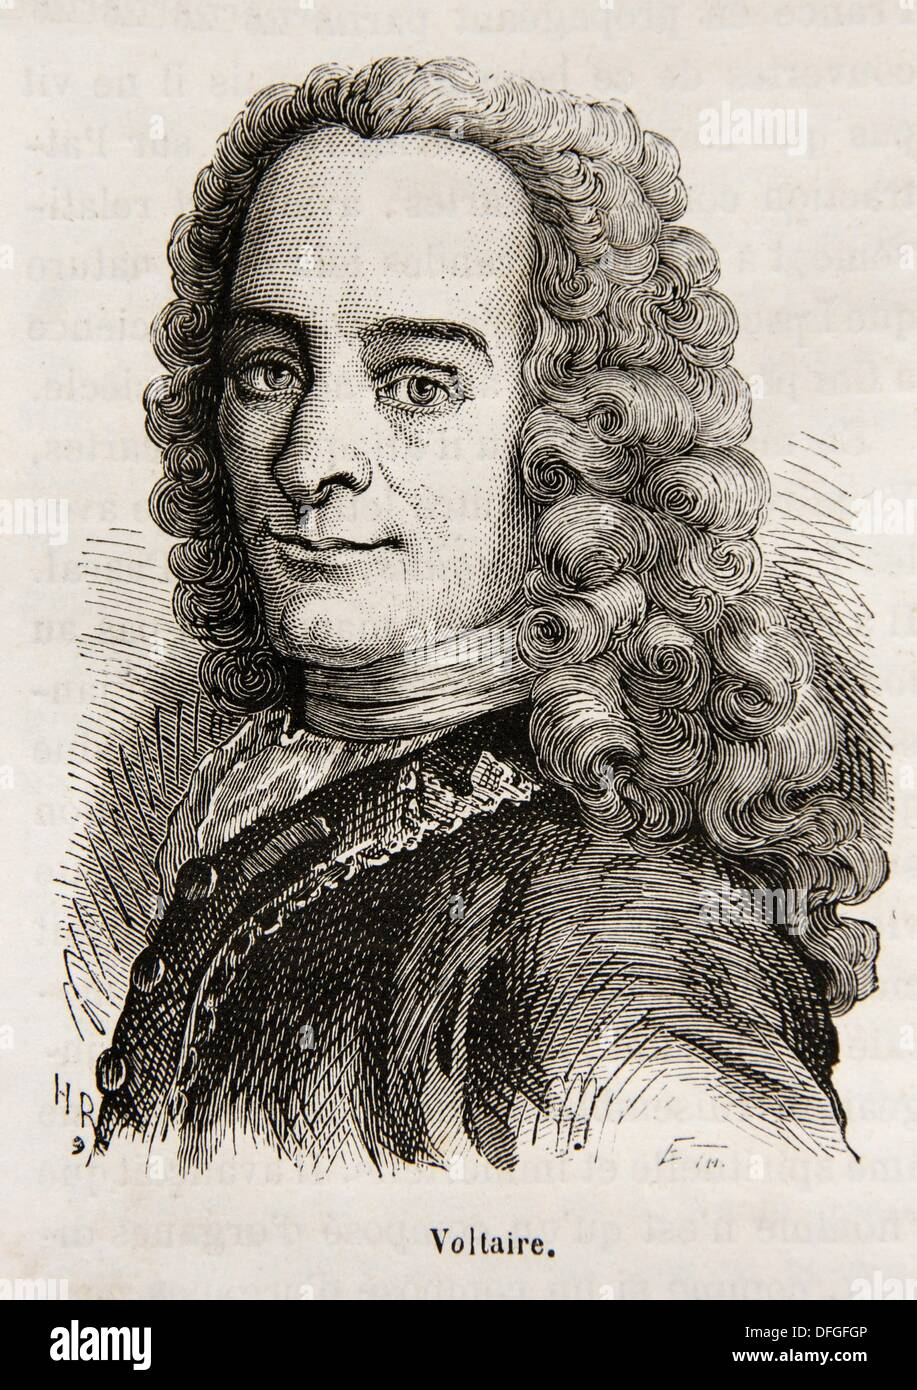 a biography of francois marie arouet voltaire a french enlightenment writer historian and philosophe François-marie arouet 21 november 1694 -- 30 may 1778), known by his pen name voltaire, was a frencmore.